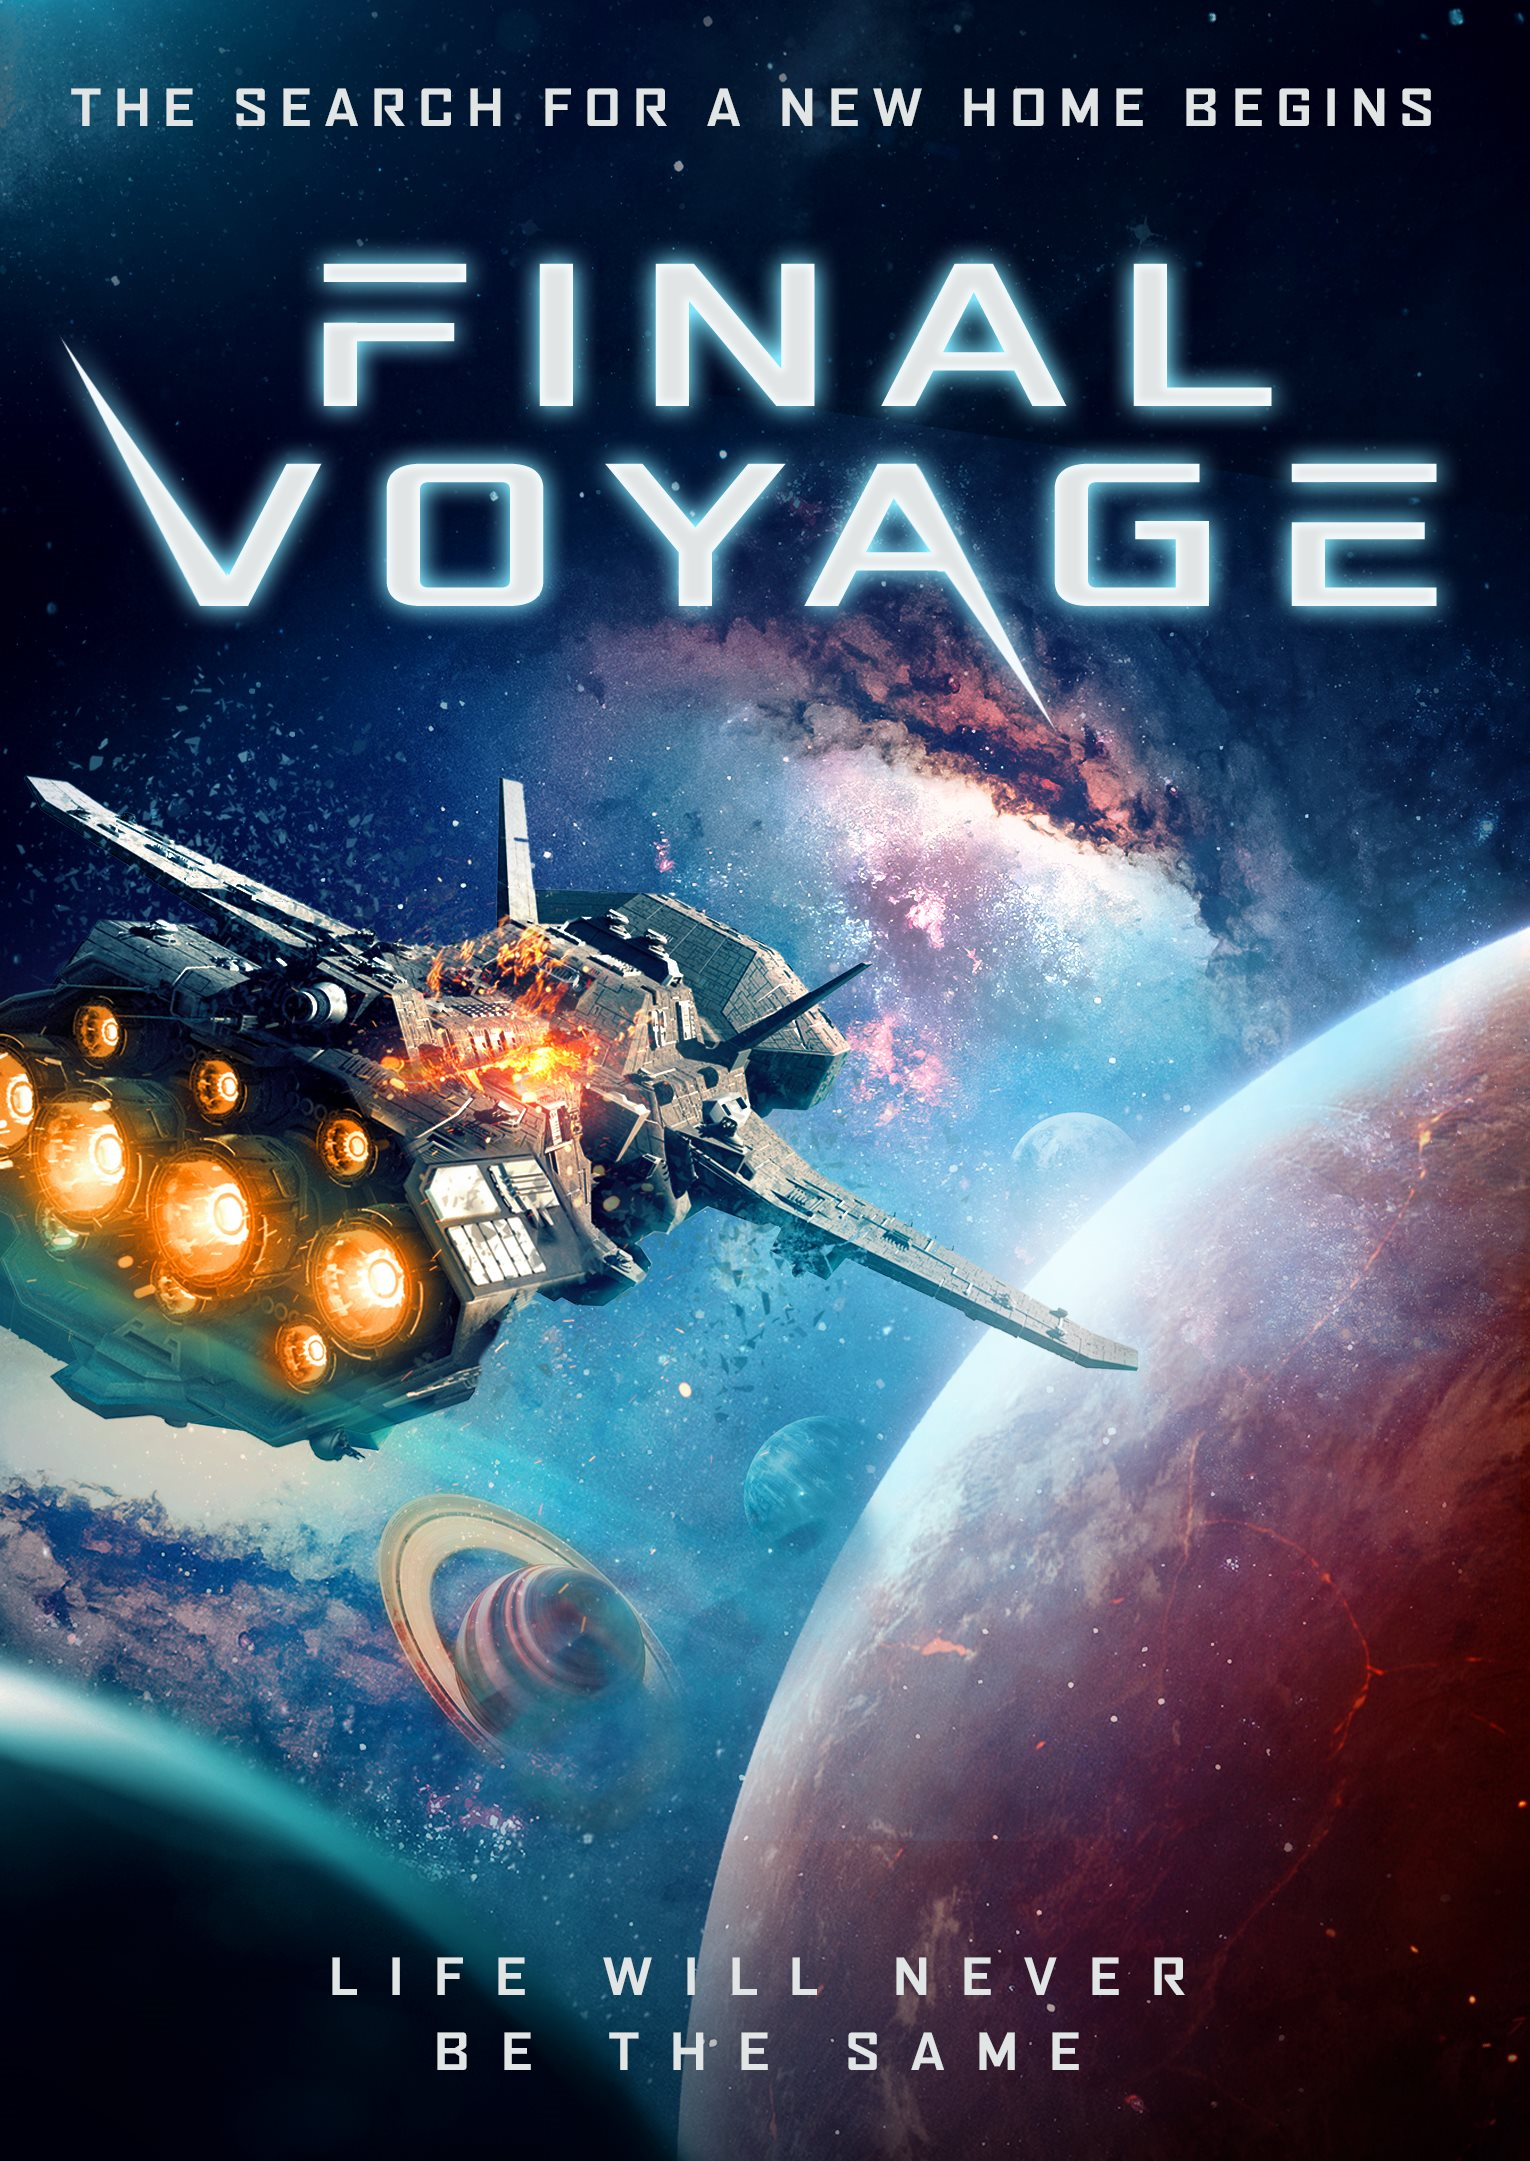 Final Voyage 2020 Dual Audio 720p HDRip [Hindi – English] Download